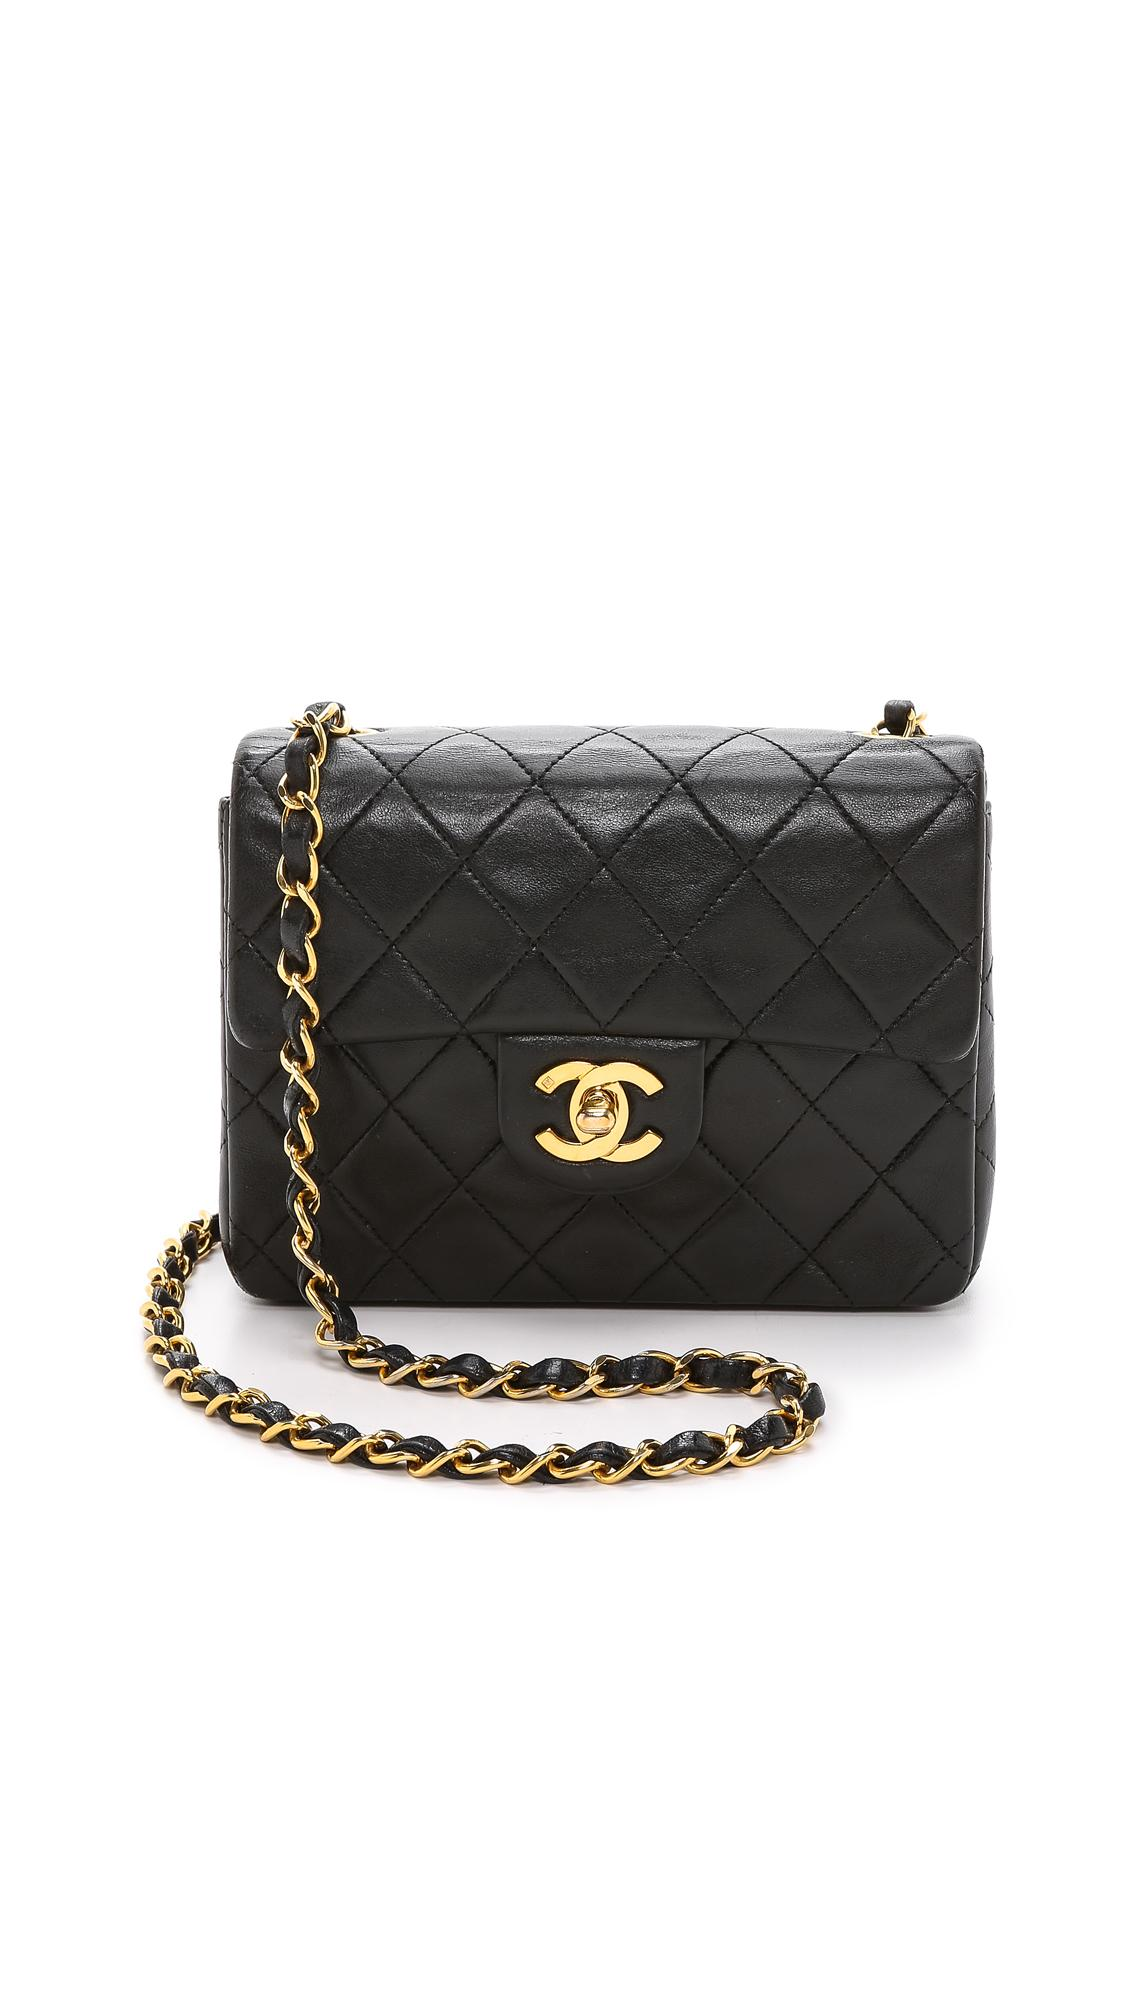 5aebbc3986fa7c What Goes Around Comes Around Chanel Mini Flap Bag In Black | ModeSens